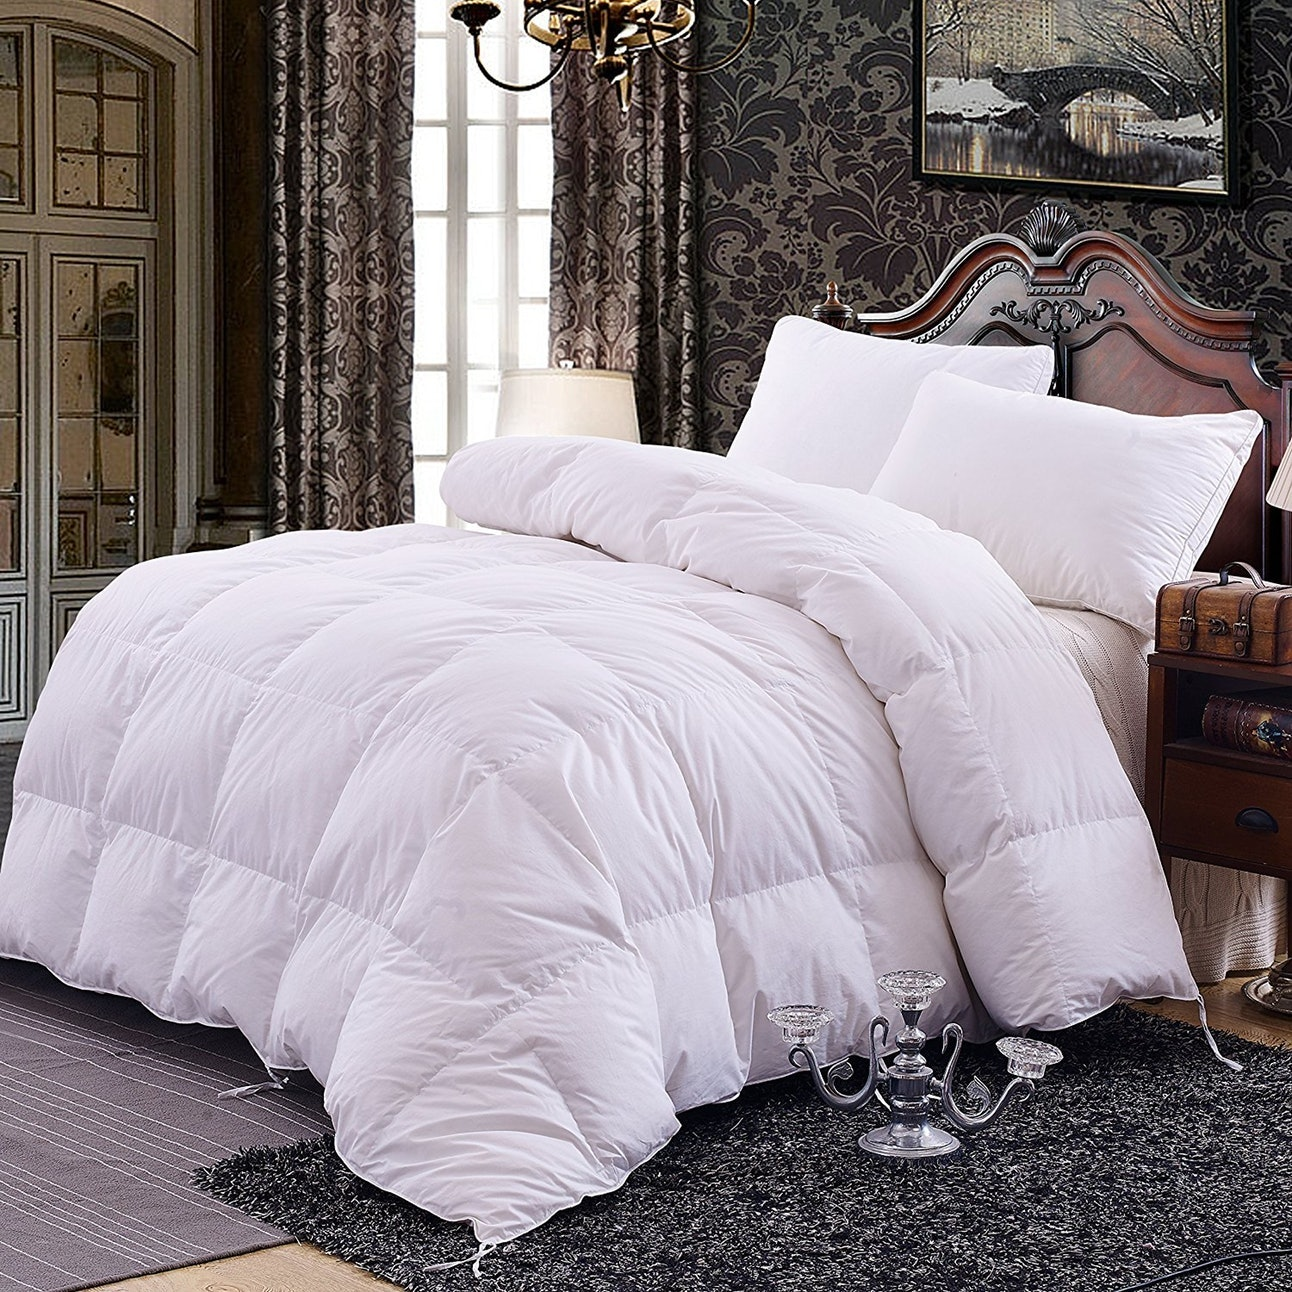 The 8 Best Year Round Down Comforters